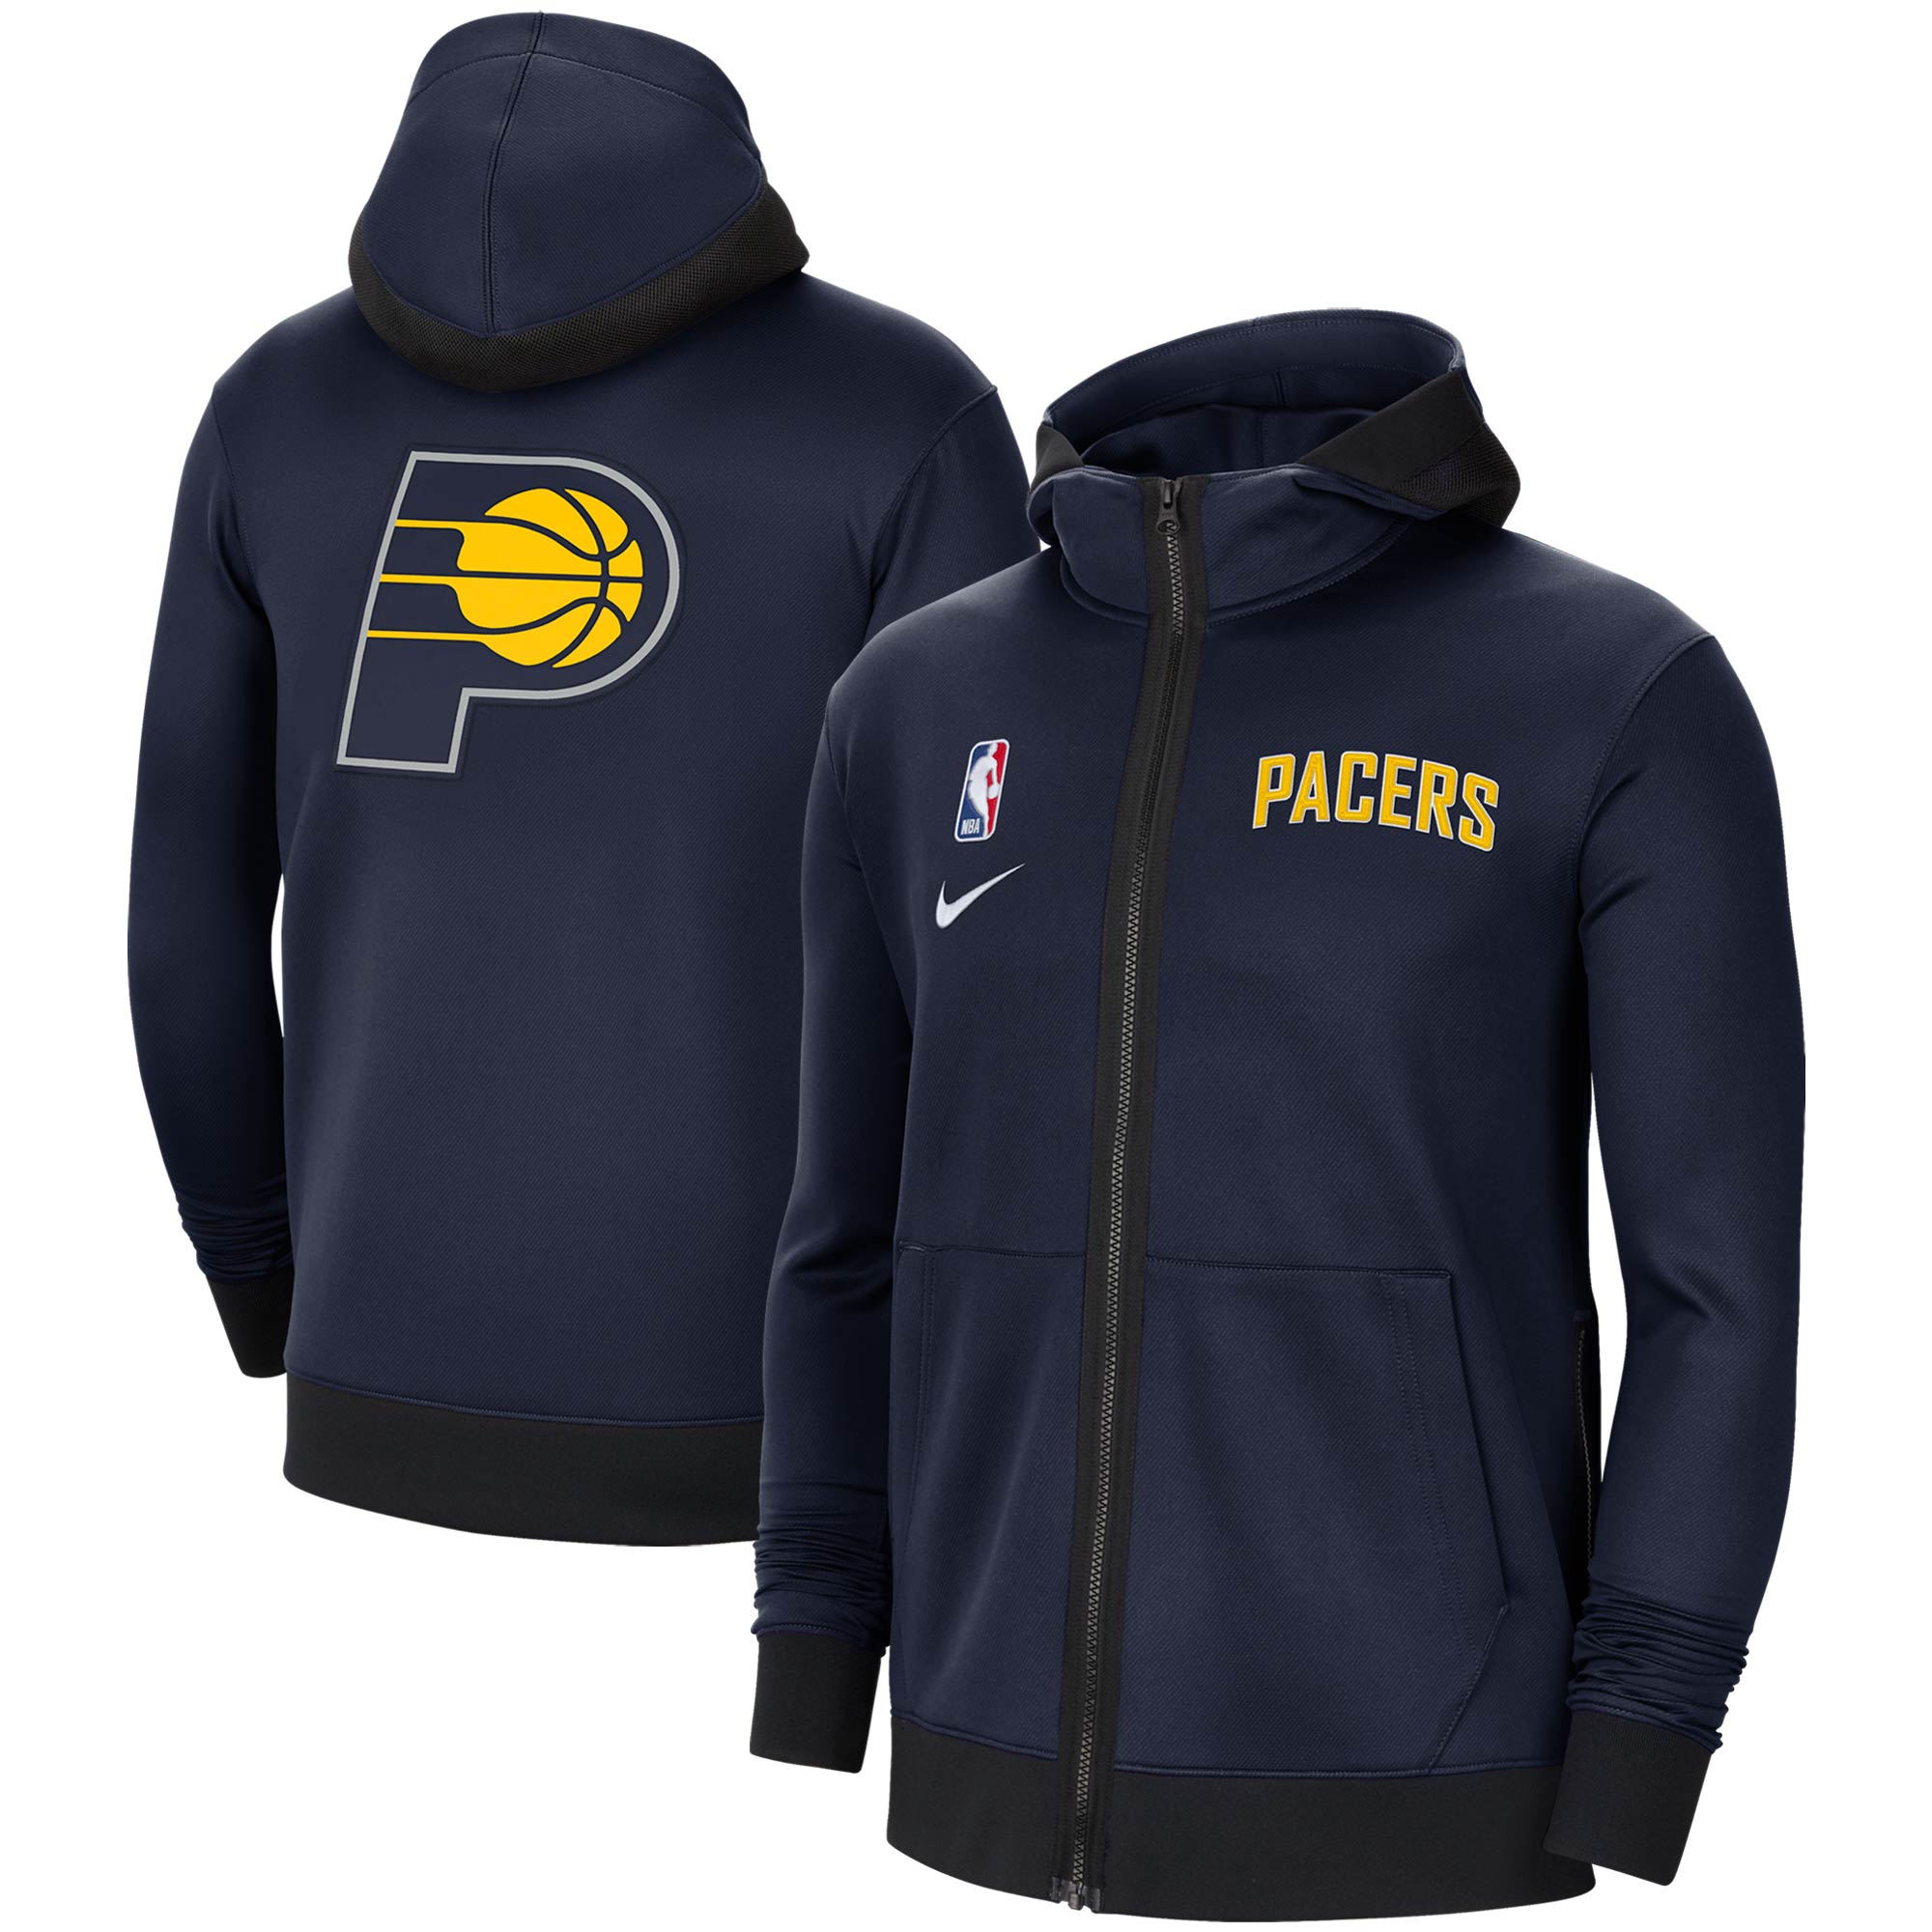 Indiana Pacers Nike Authentic Showtime Performance Full-Zip Hoodie Jacket - Navy